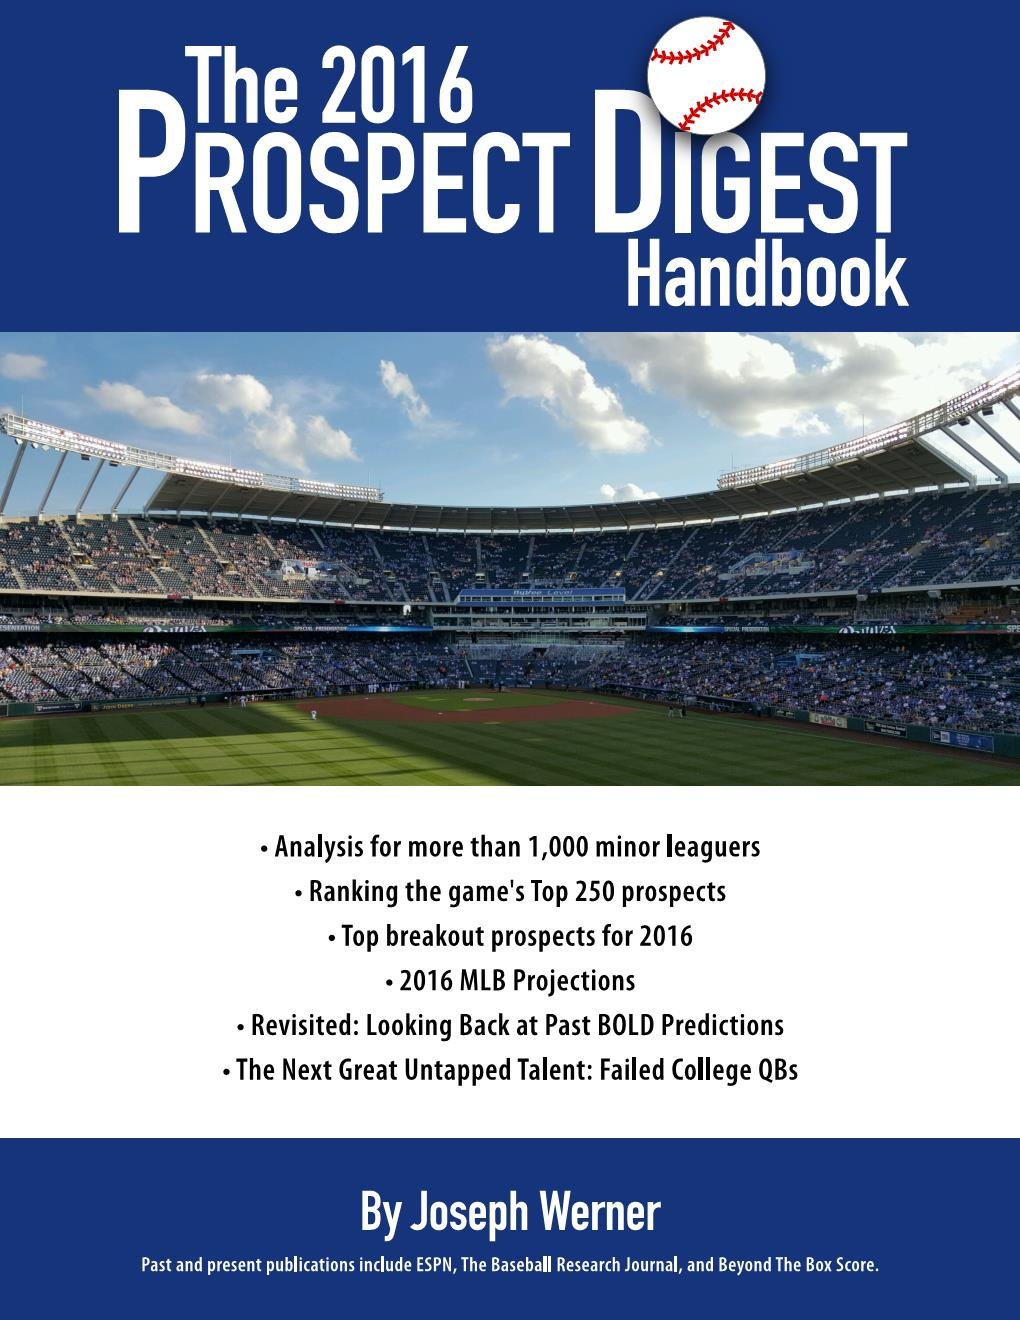 Image OfThe 2016 Prospect Digest Handbook (English Edition)